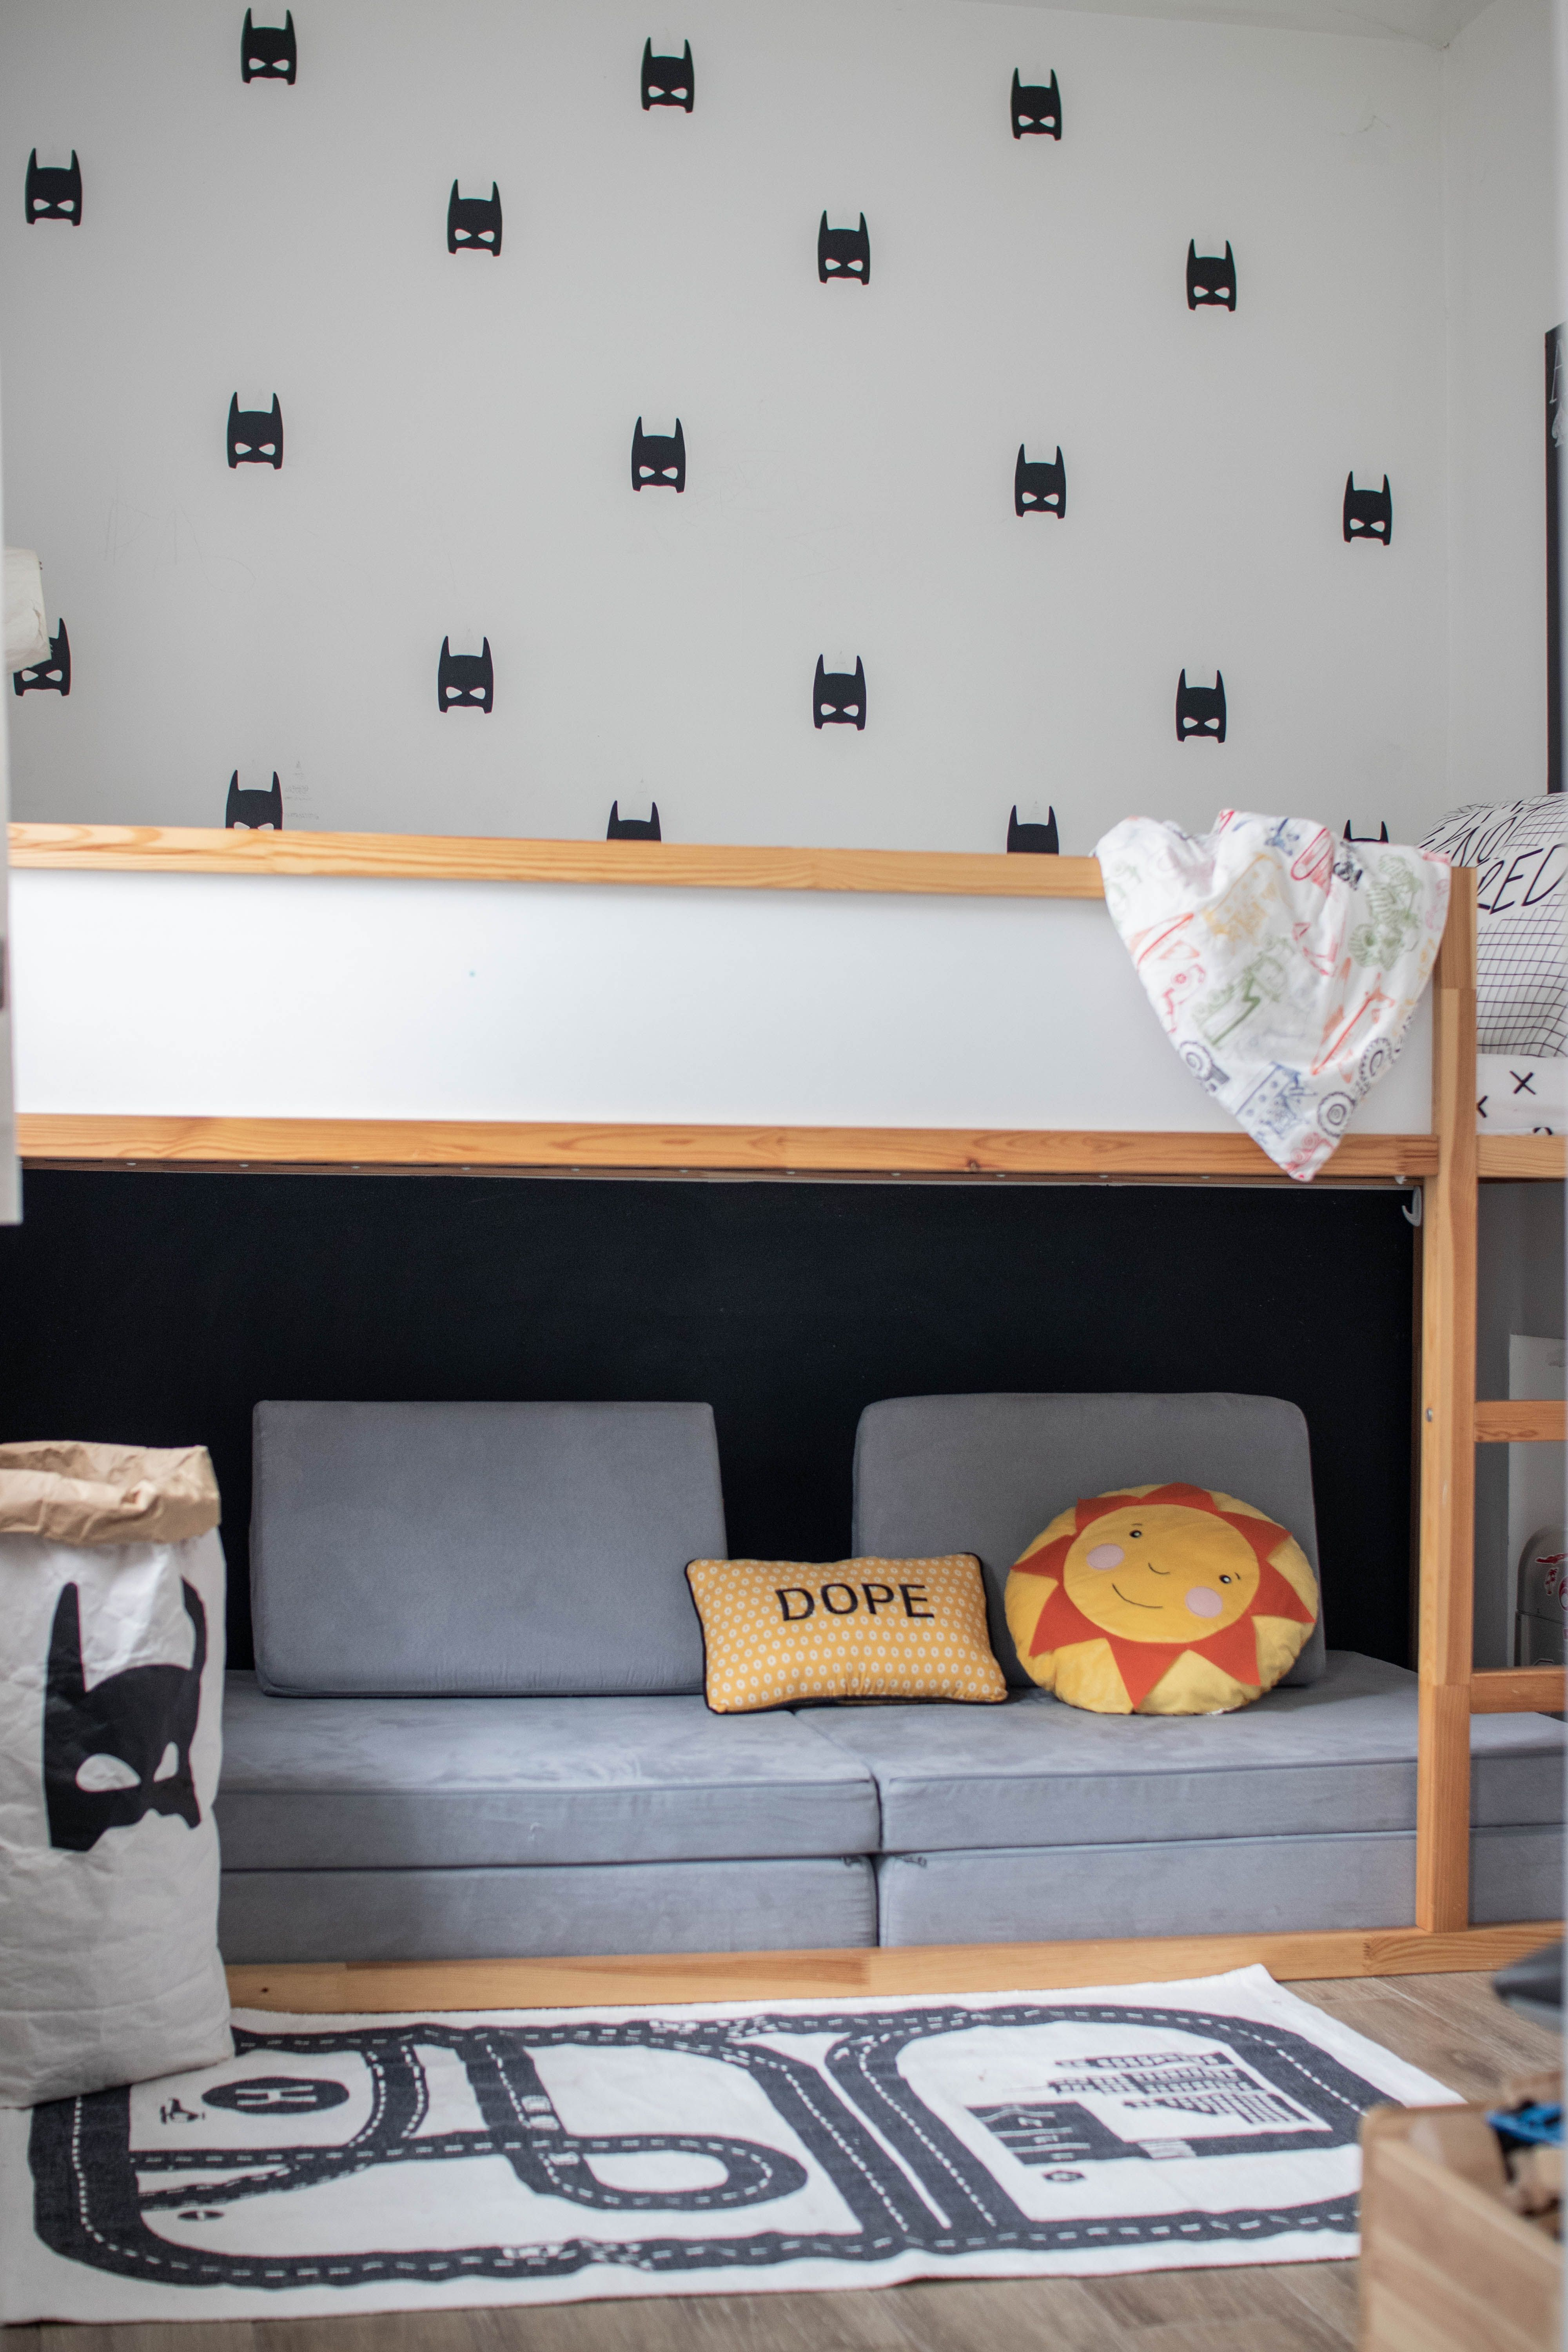 45 Best Boys Bedrooms Designs Ideas And Decor For Inspiration Slaapkamerdesigns Ikea Slaapkamer Een Slaapkamer Inrichten